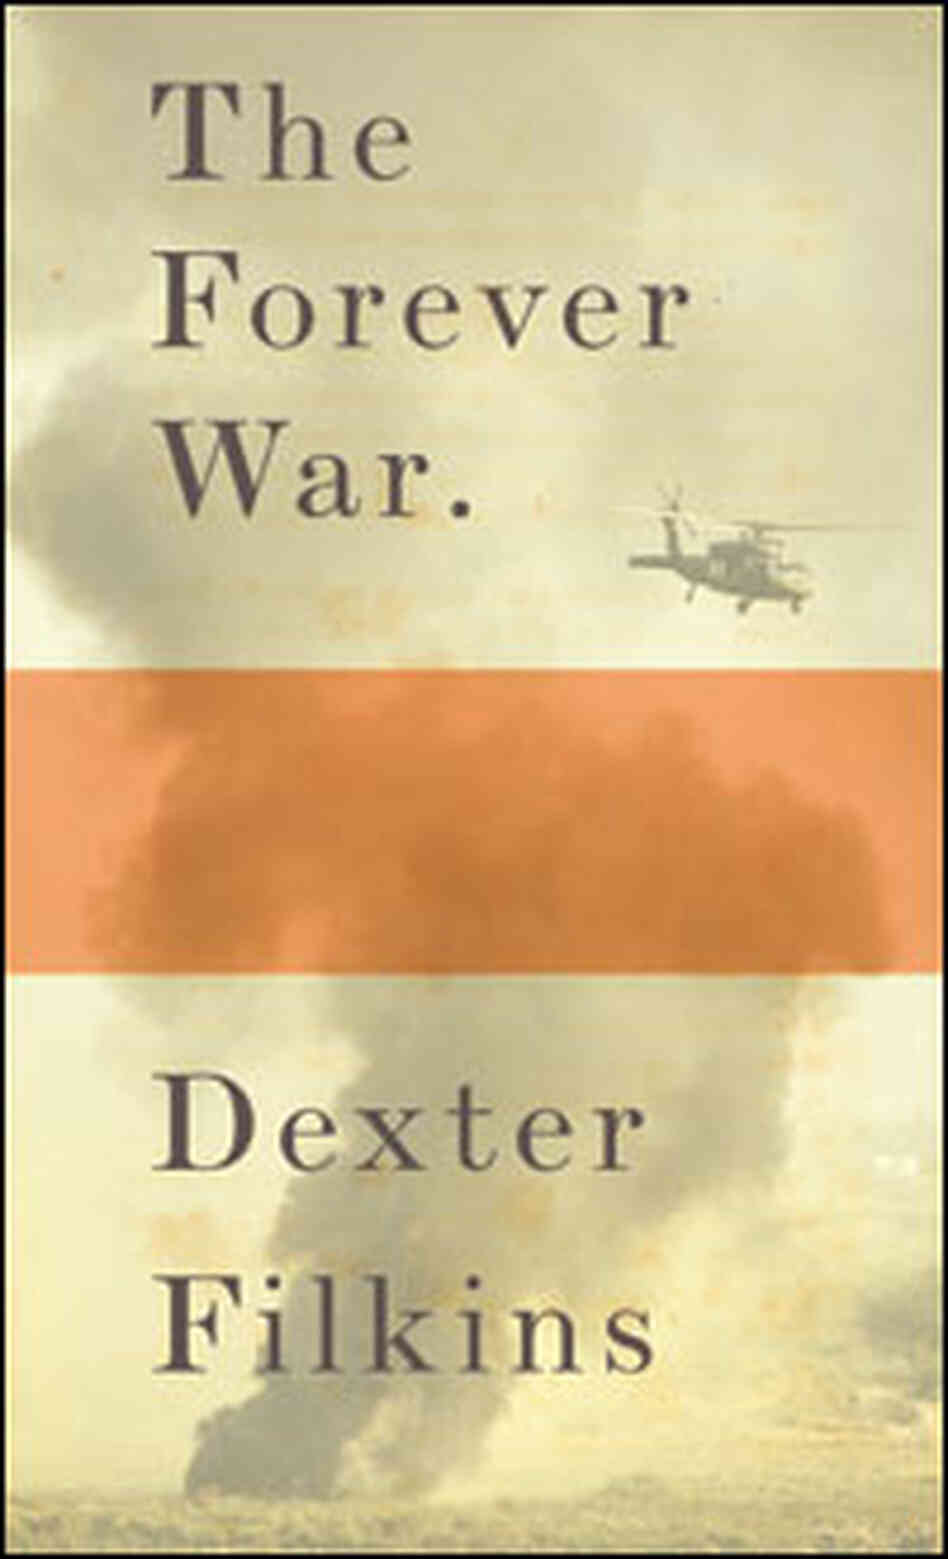 Dexter Filkin's 'The Forever War'